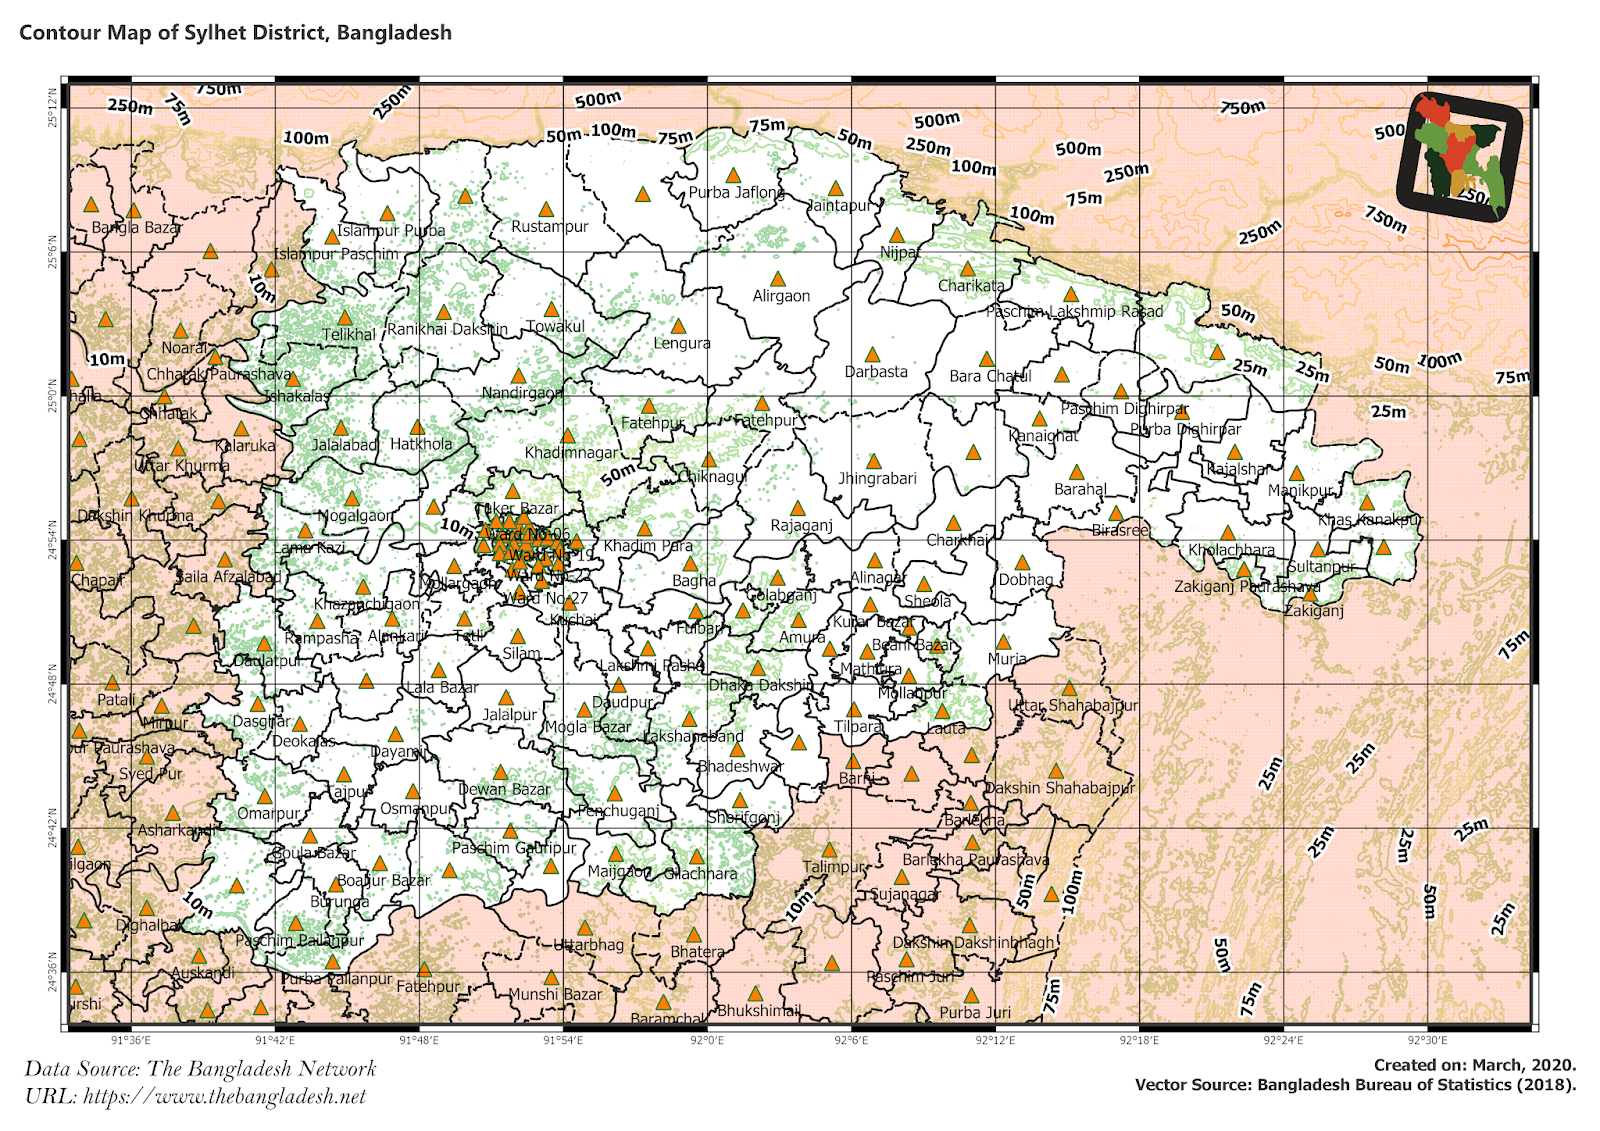 Elevation Map of Sylhet District of Bangladesh